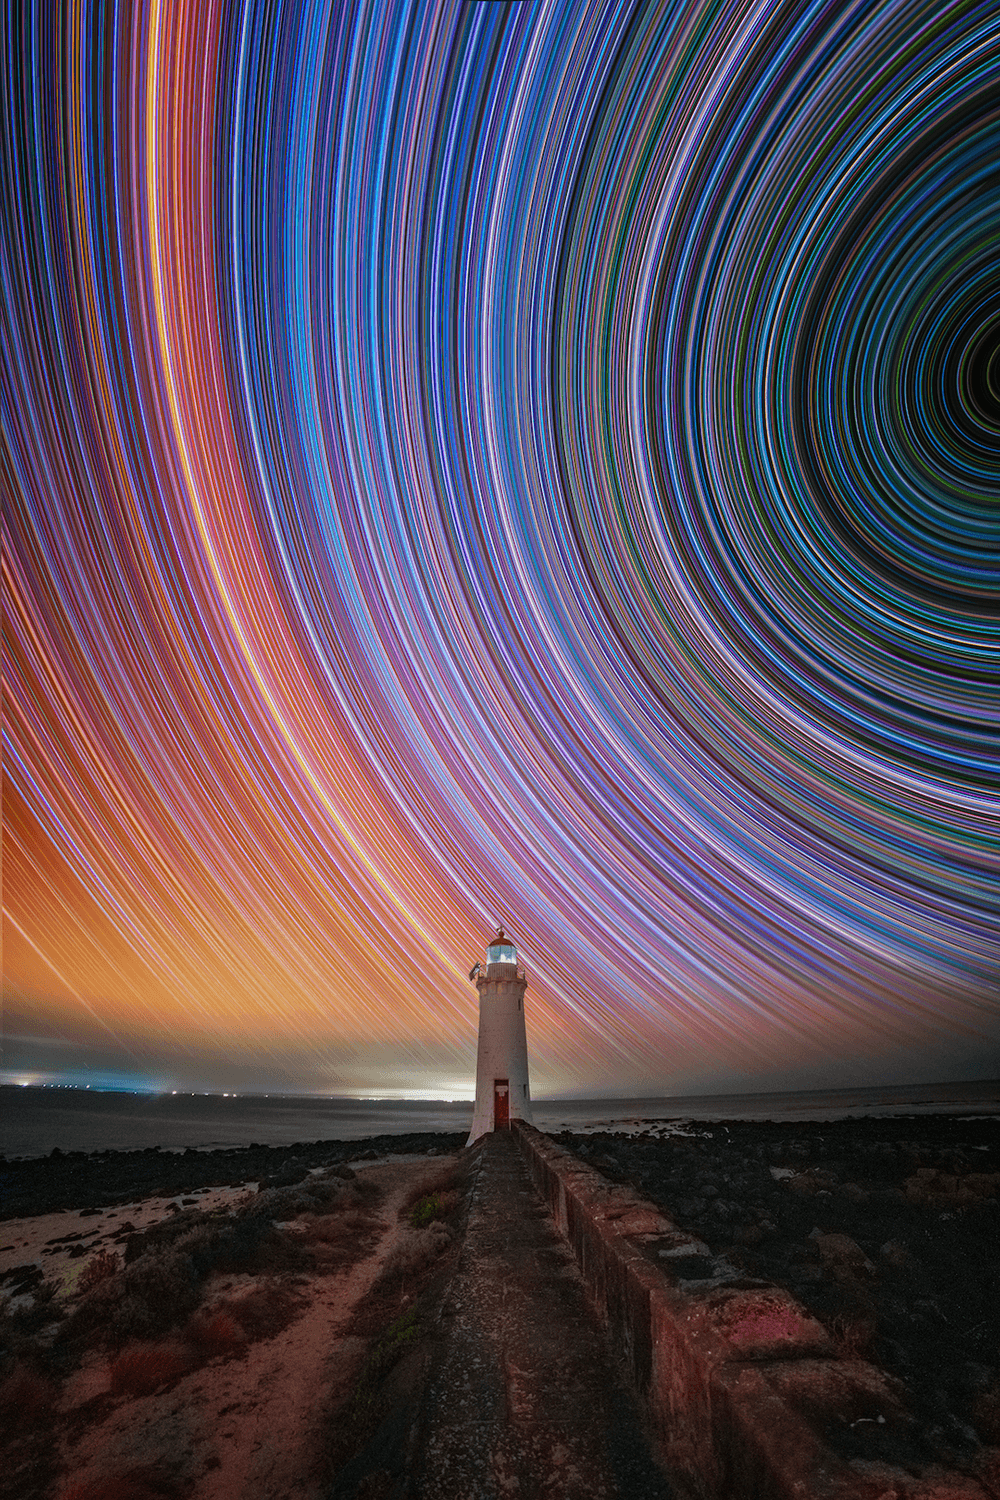 Long exposure astrophotography by @hangingpixels_photo_art